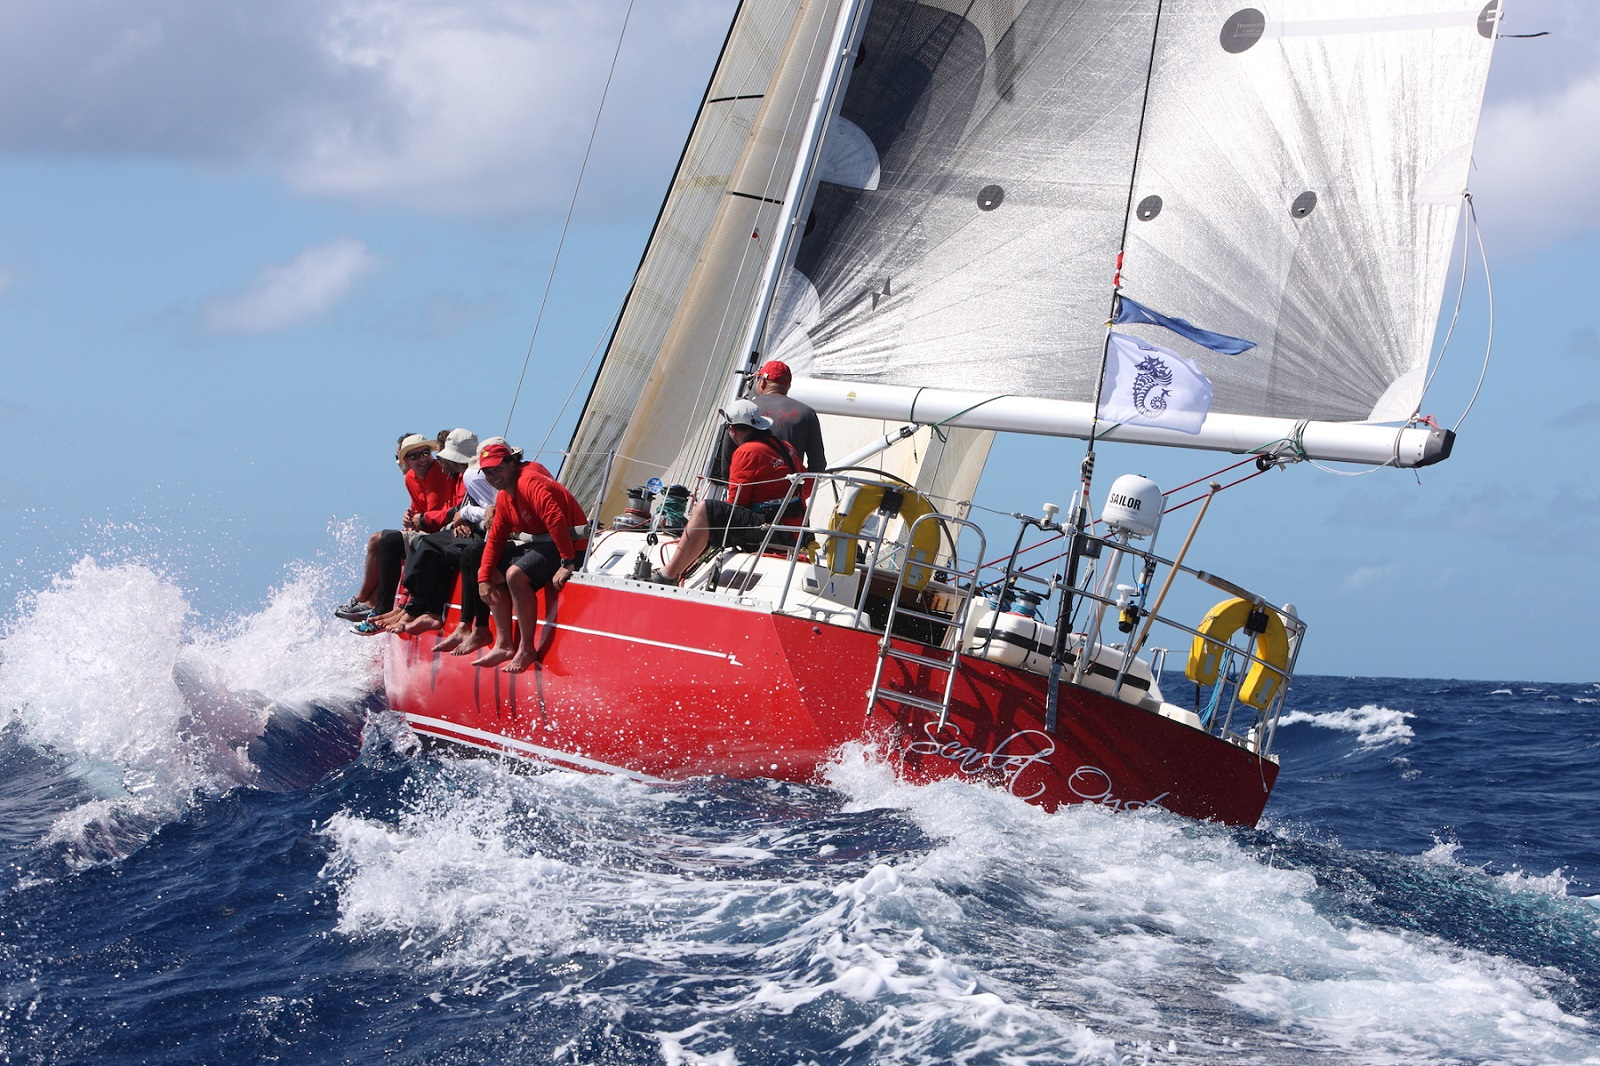 Ross Applebey will be competing in his 9th RORC Caribbean 600 with his Oyster 48 Scarlet Oyster © Tim Wright/Photoaction.com